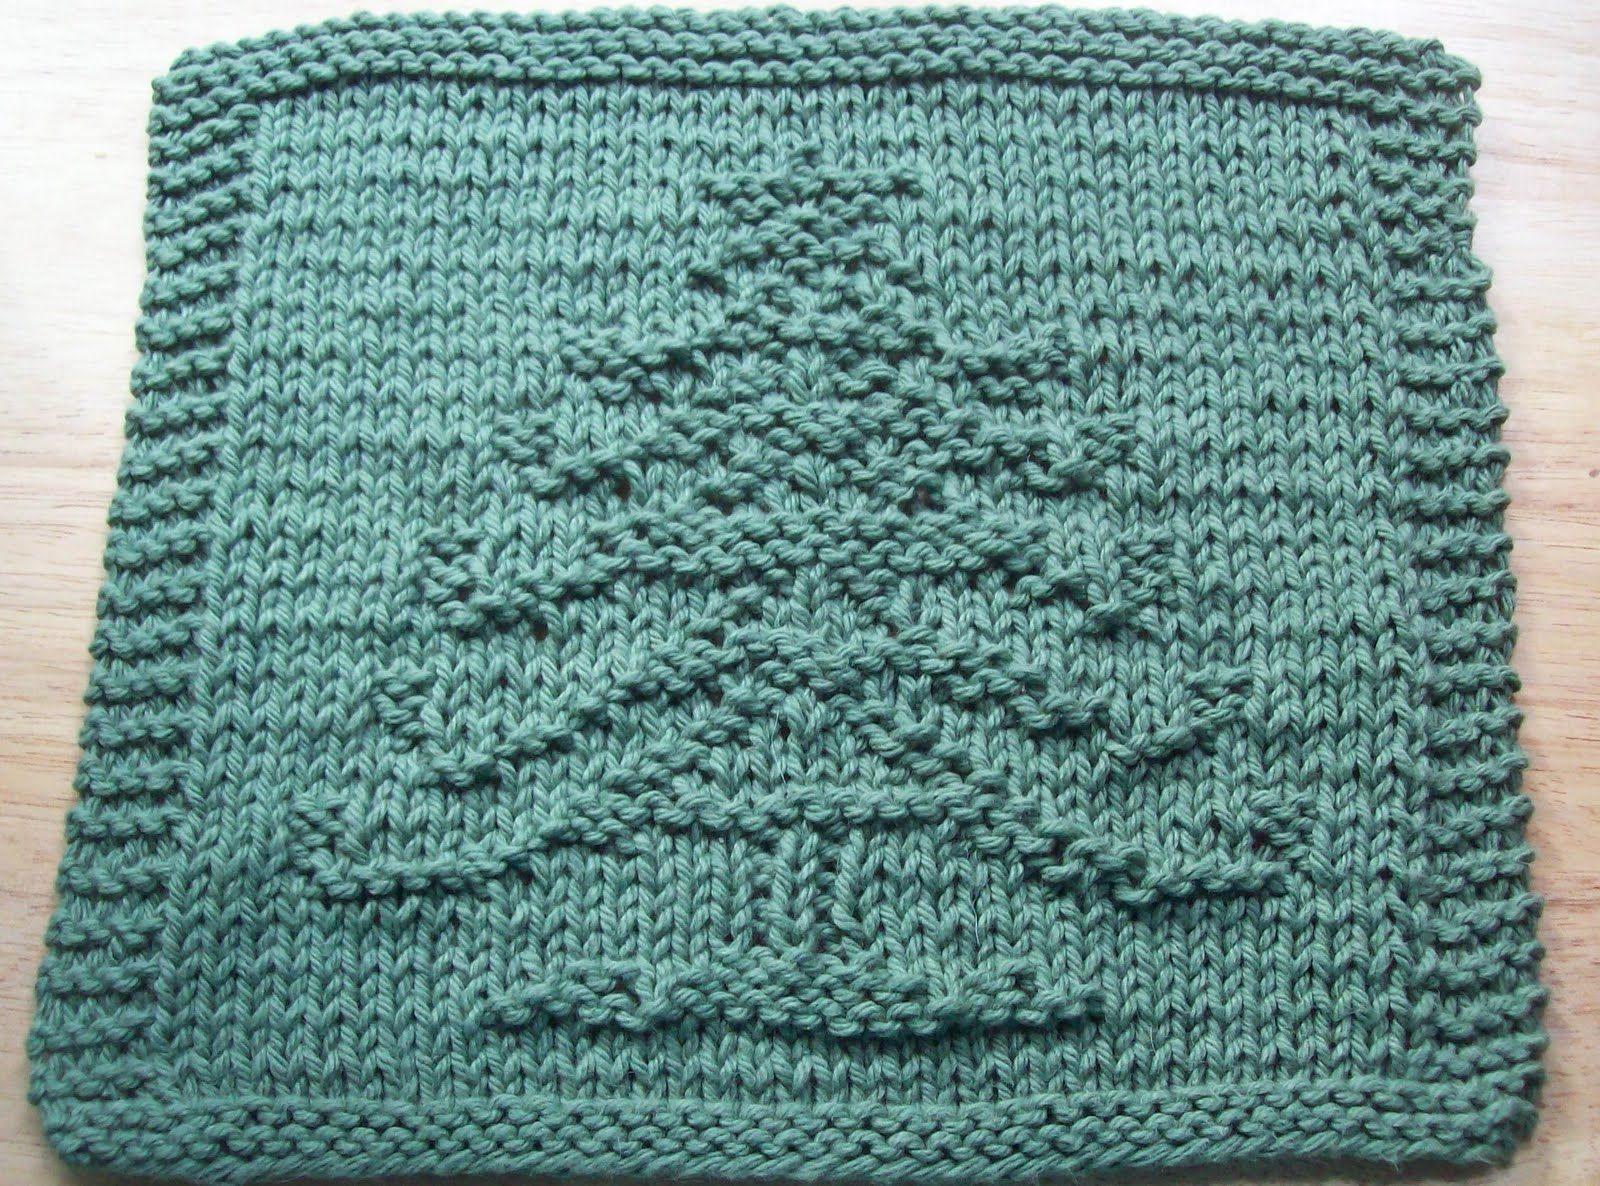 Free Knitting Dishcloth Patterns Image collections - handicraft ...